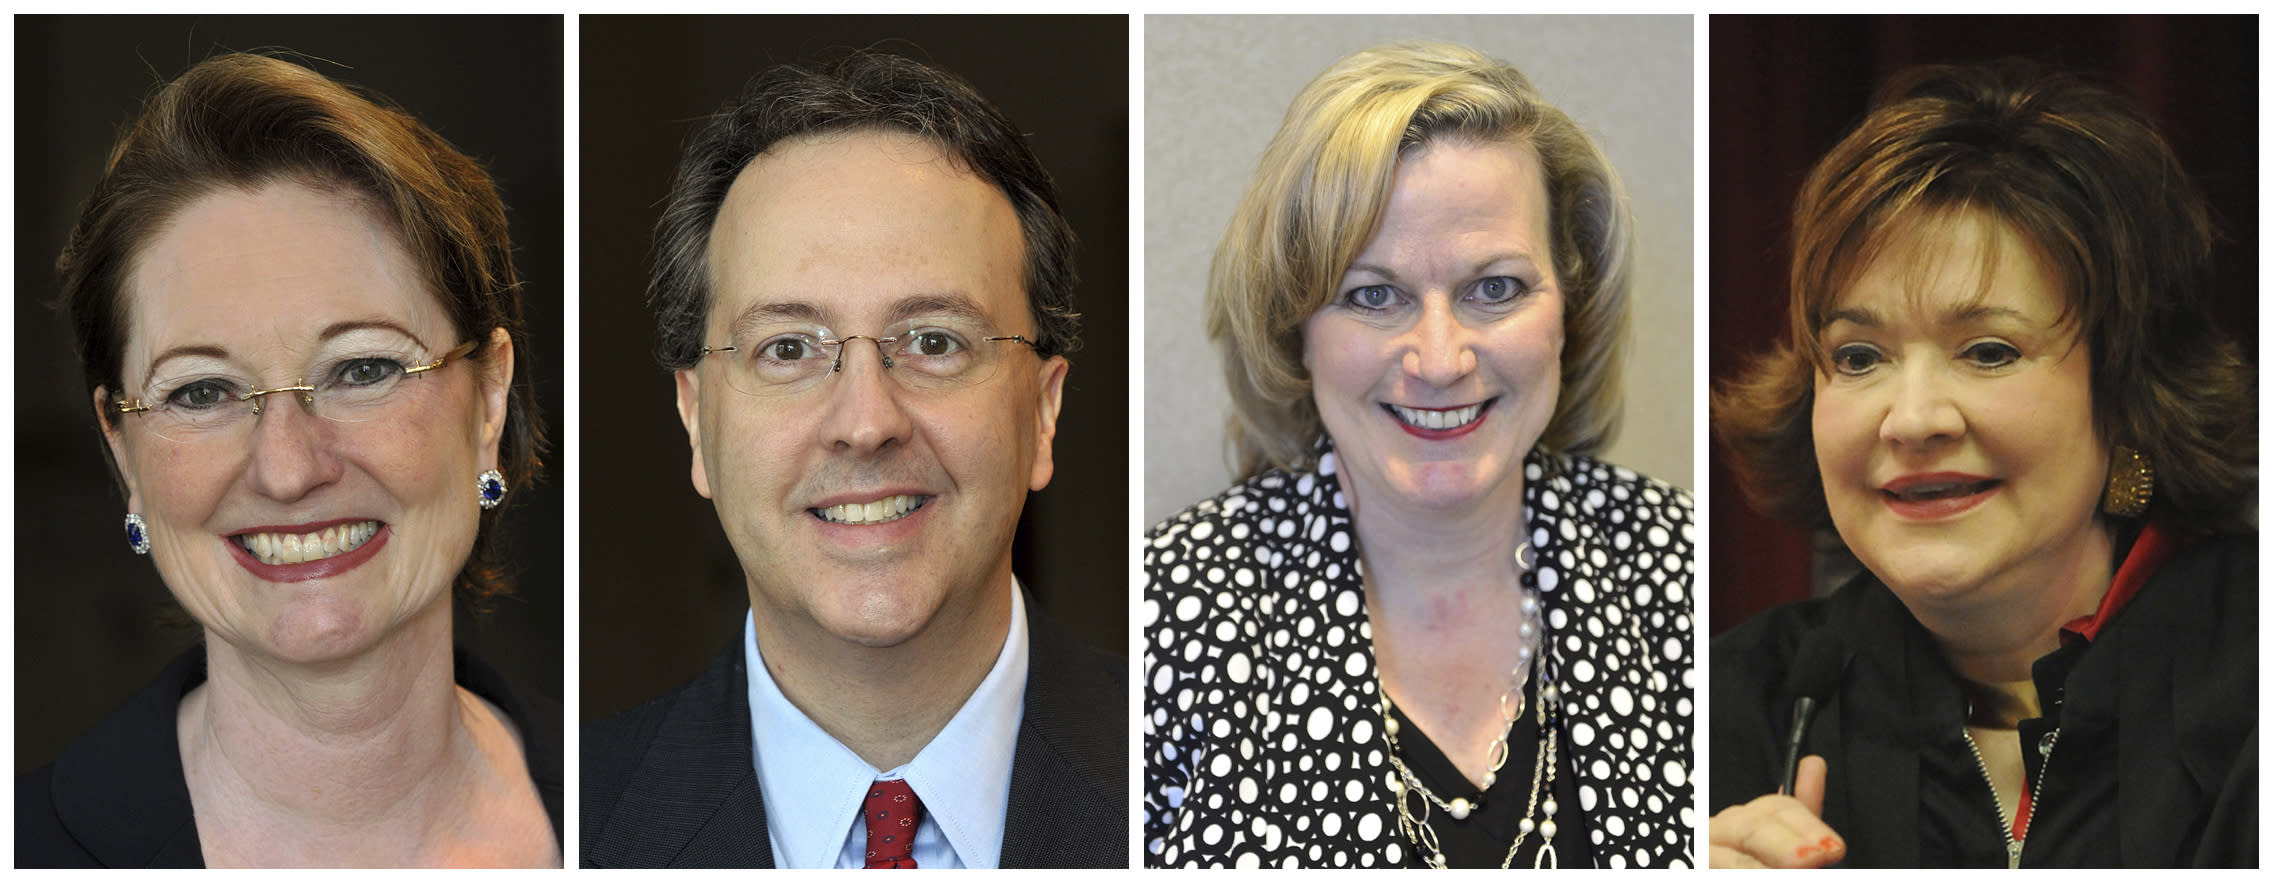 This combination of photos shows West Virginia state Supreme Court justices, from left, Robin Davis on Oct. 3, 2012, Allen Loughry on Oct. 3, 2012, Beth Walker on March 16, 2016 and Margaret Workman on Dec. 29, 2008. The West Virginia House of Delegates is considering impeachment articles against all four justices. (Courtesy of the Charleston Gazette-Mail and The Daily Mail via AP)